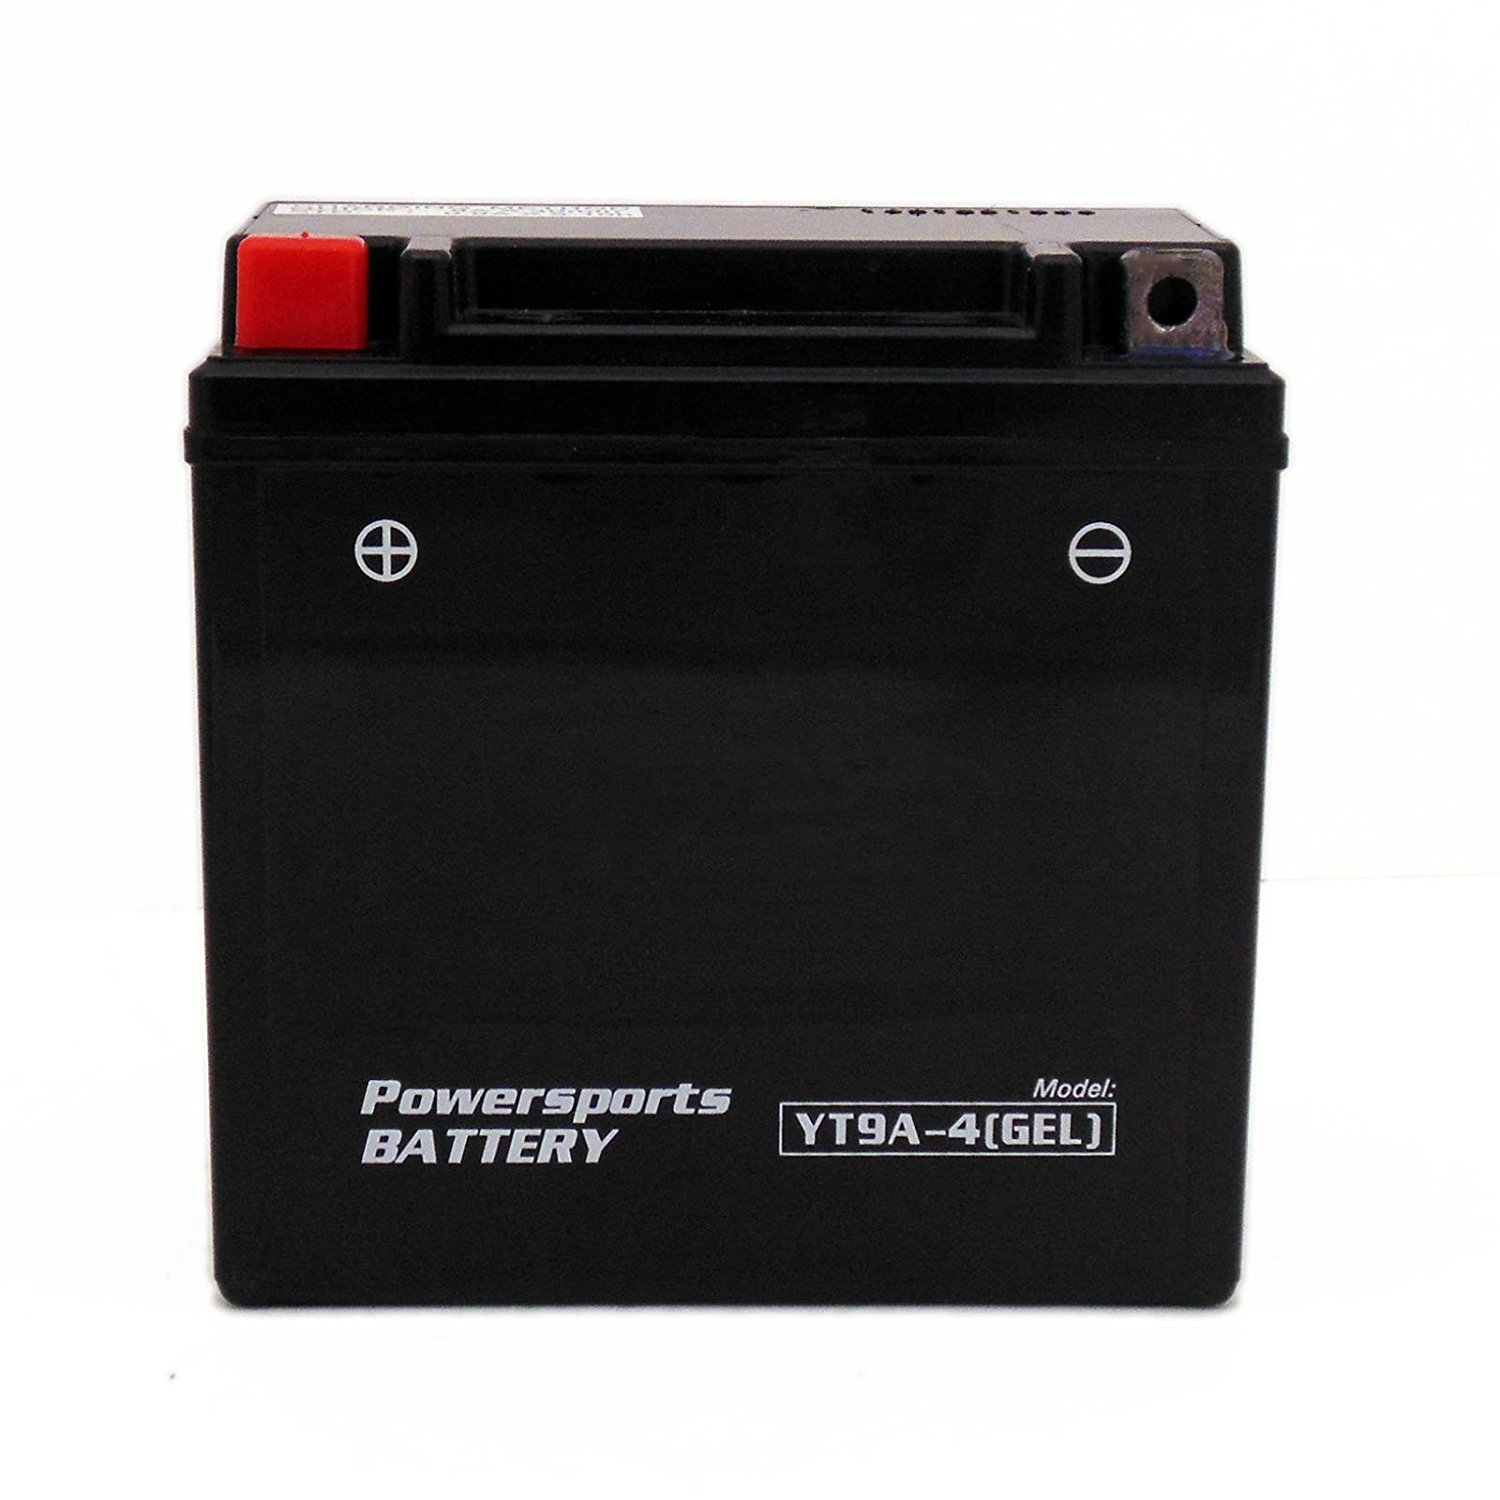 MMG YT9A-4 GEL CELL Powersports Battery – Factory Sealed, Maintenance Free - Replaces: YB9-B, YT9A-BS, 12N9-AB, YT9A